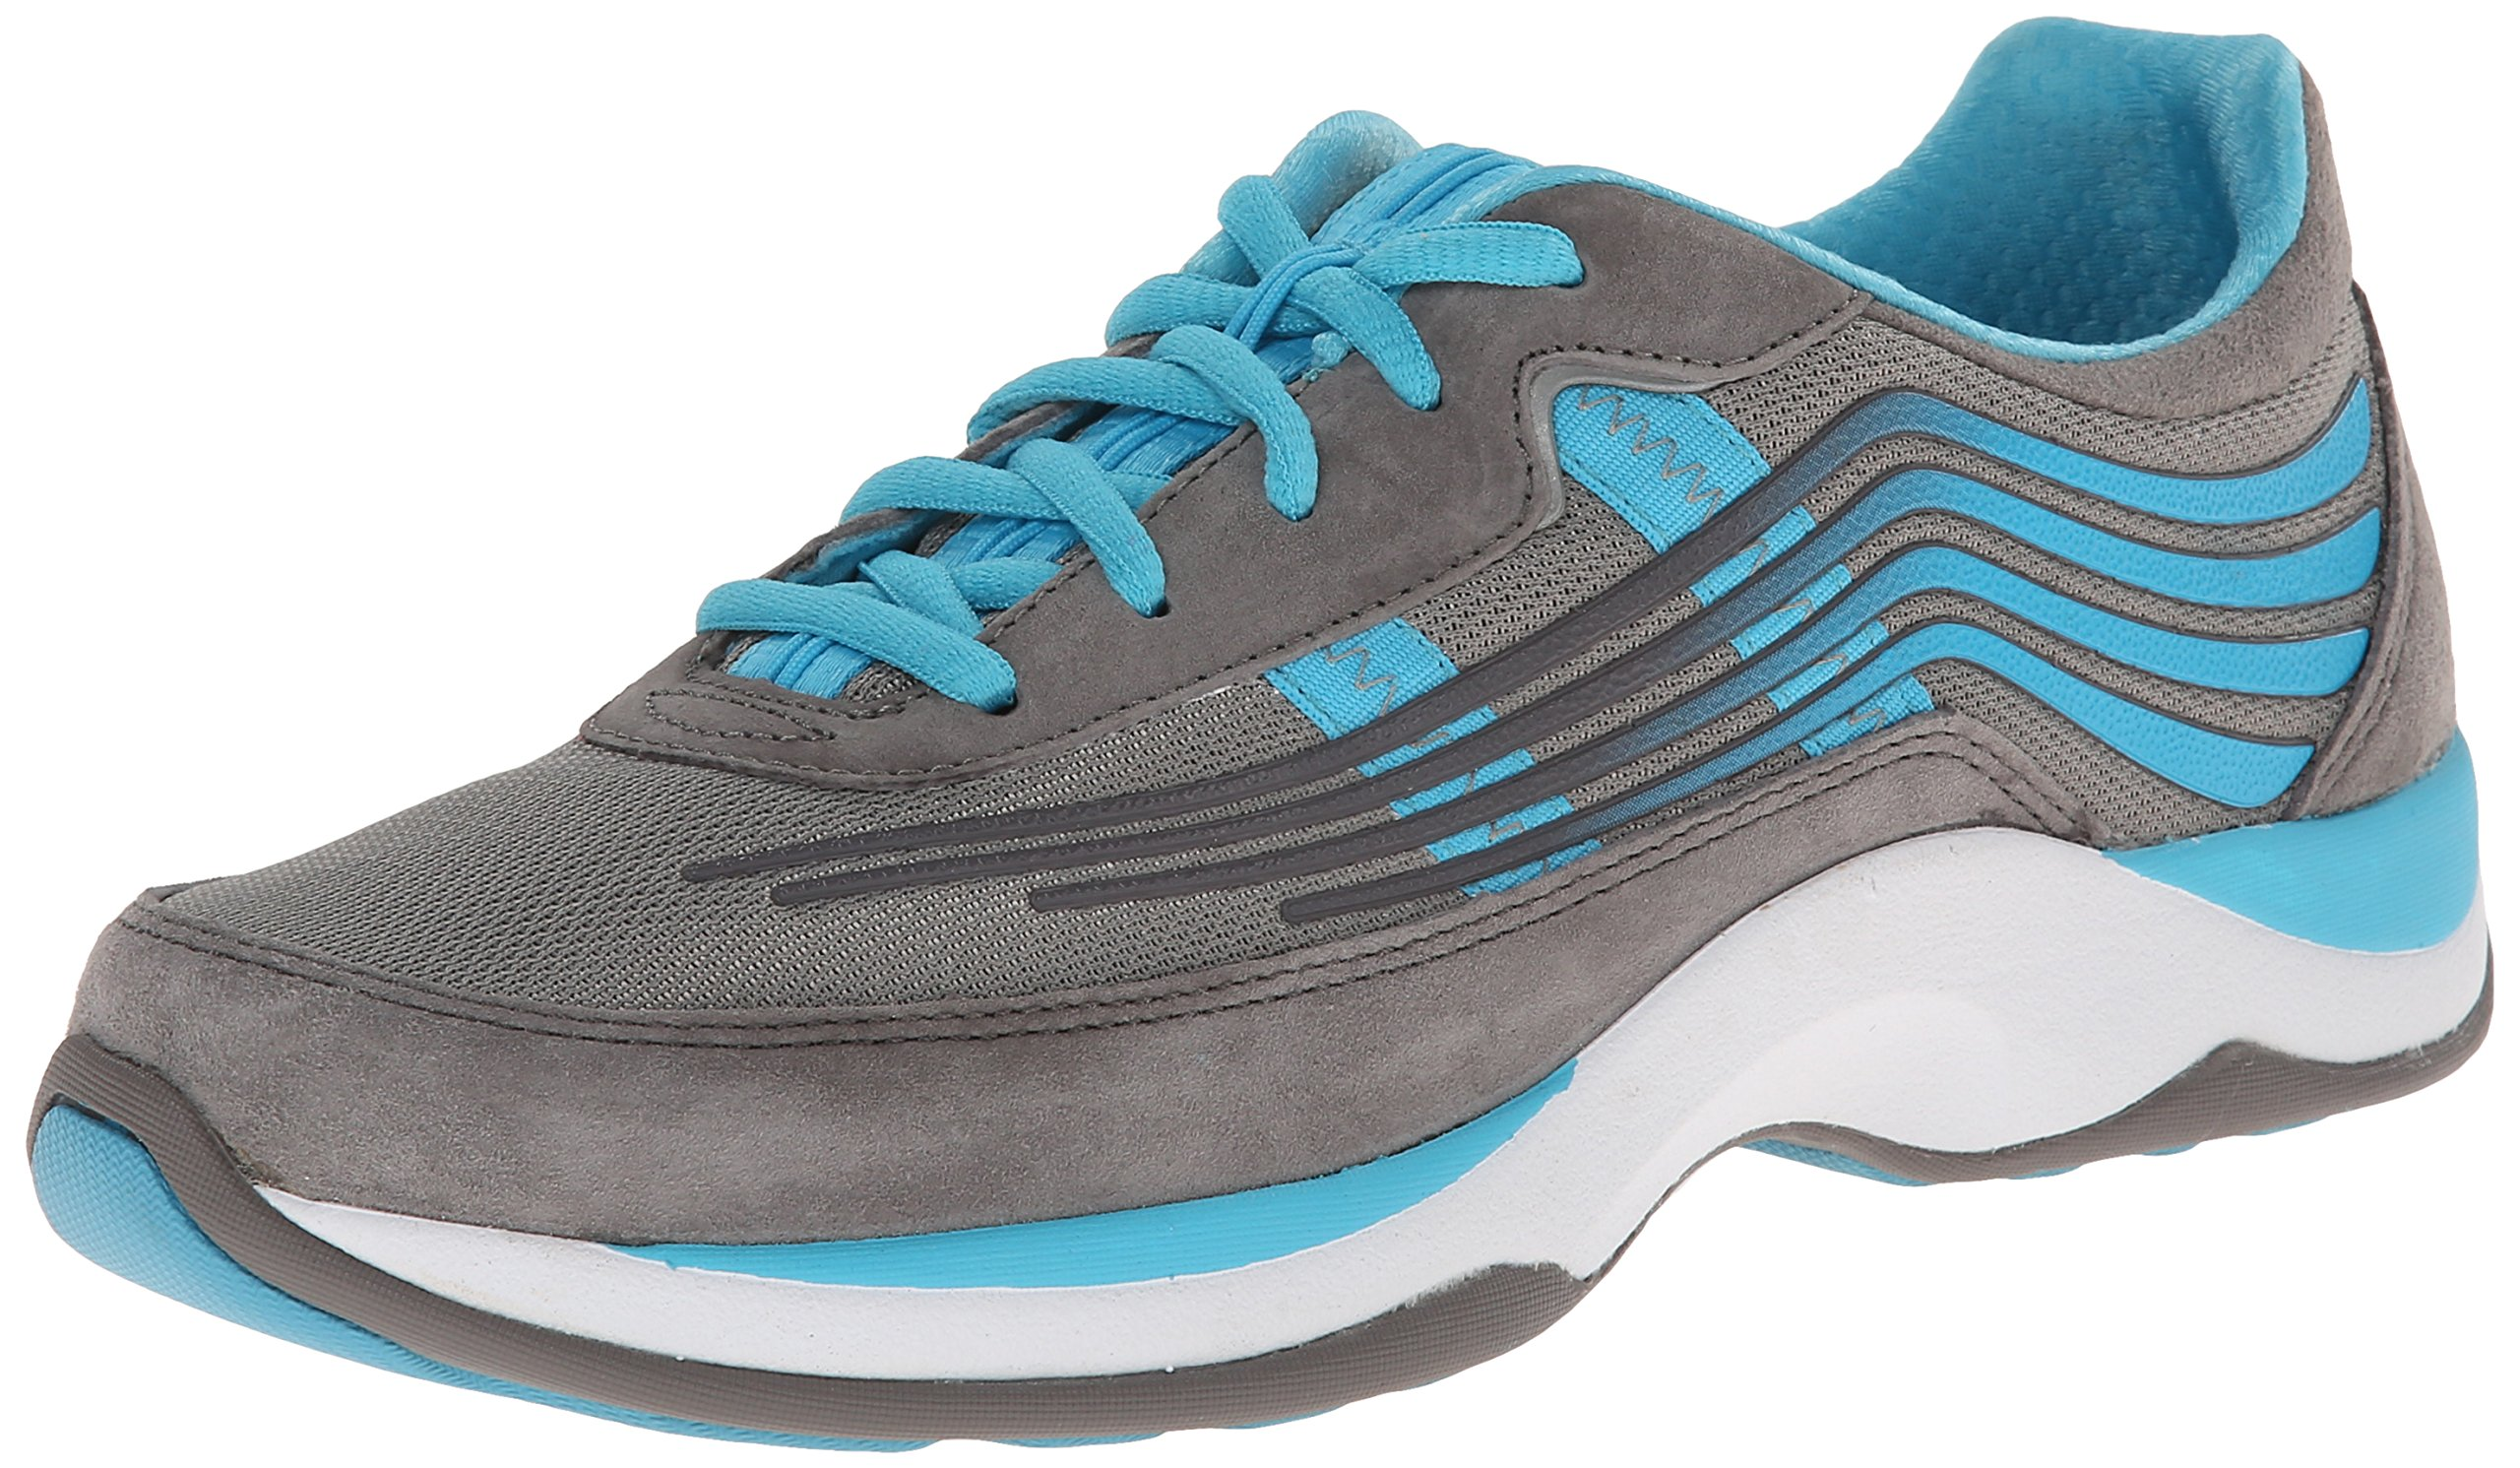 Dansko Women's Shayla Fashion Sneaker, Grey/Aqua Suede, 36 EU/5.5-6 M US